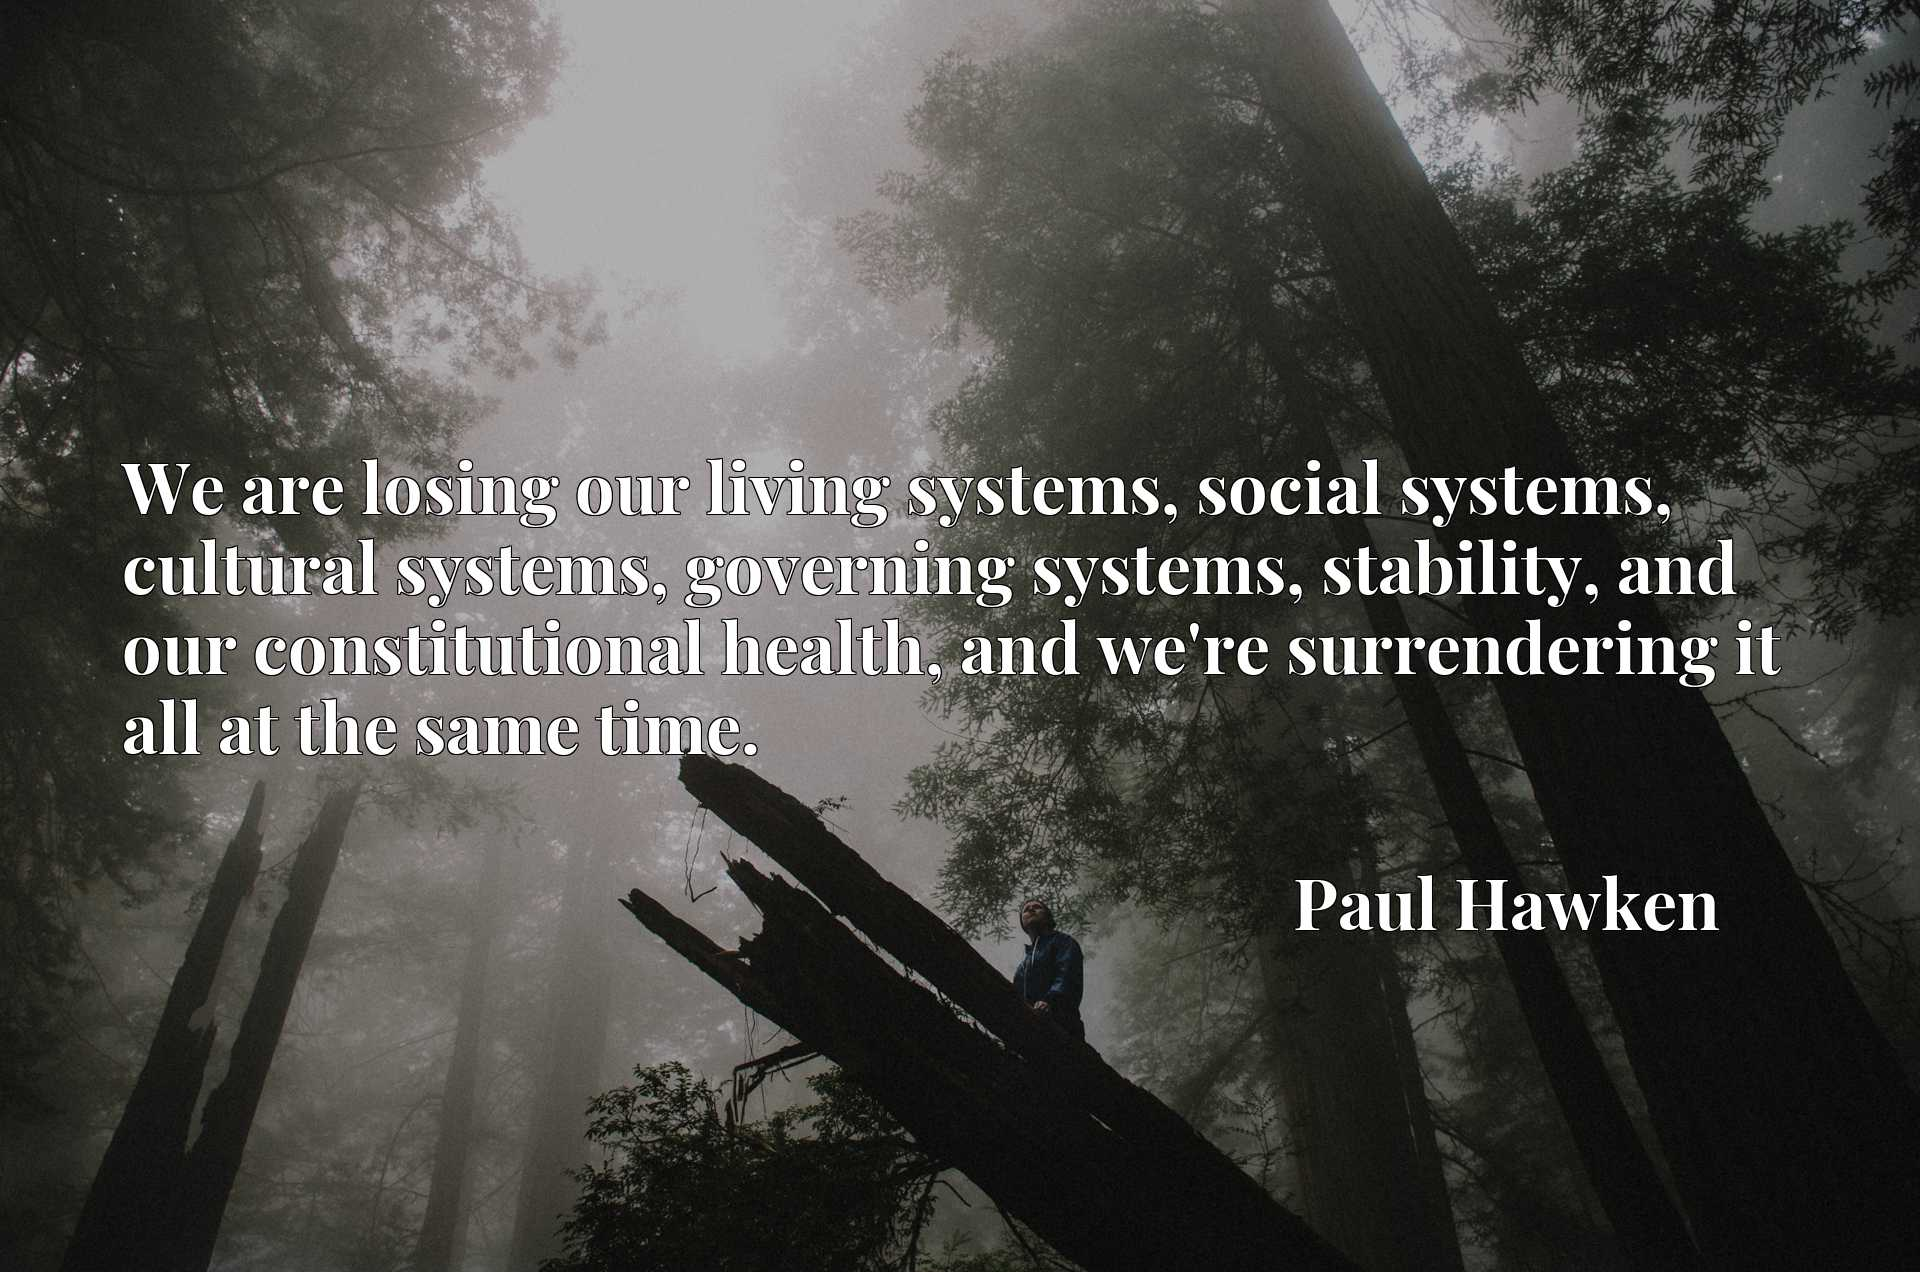 We are losing our living systems, social systems, cultural systems, governing systems, stability, and our constitutional health, and we're surrendering it all at the same time.